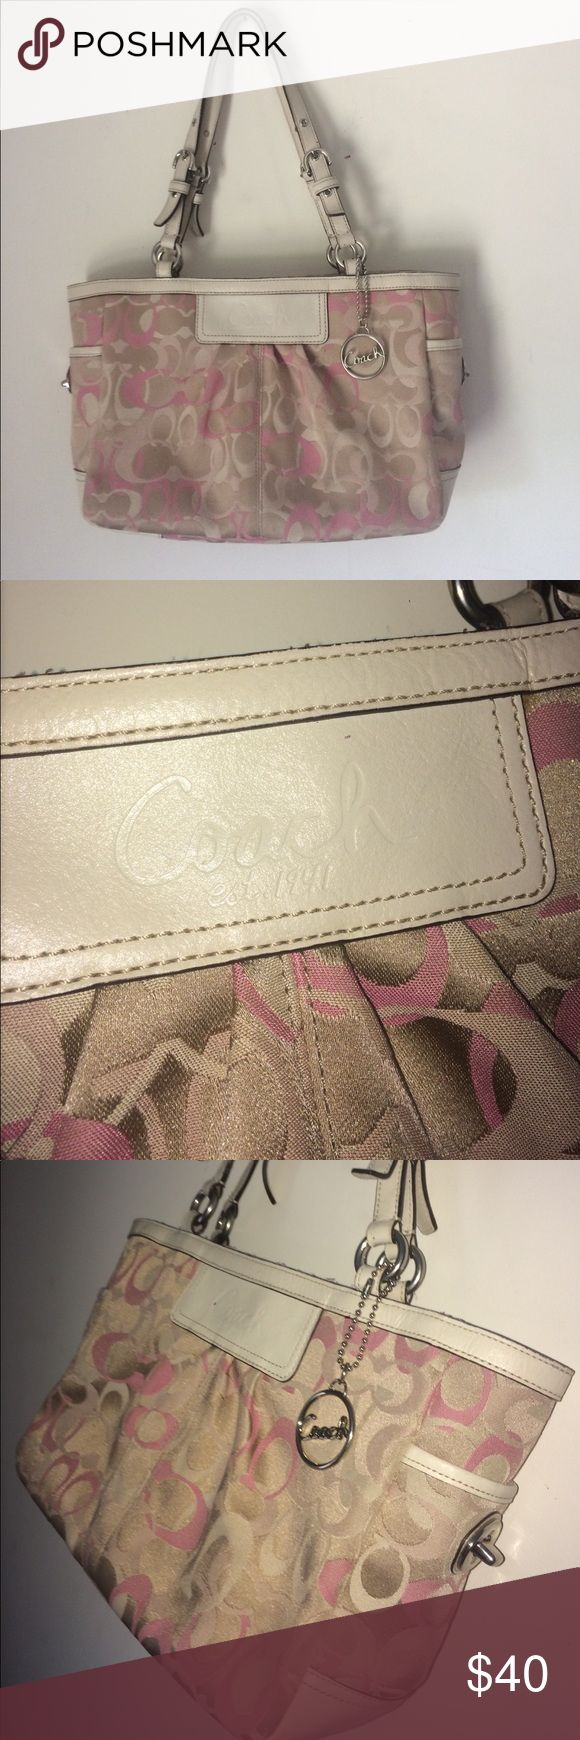 COACH Purse- Pink and Champagne This bag is super cute and in perfect condition on the outside. There are a few light pen marks on the inside but aren't noticeable! Price negotiable!💕😊 Coach Bags Shoulder Bags